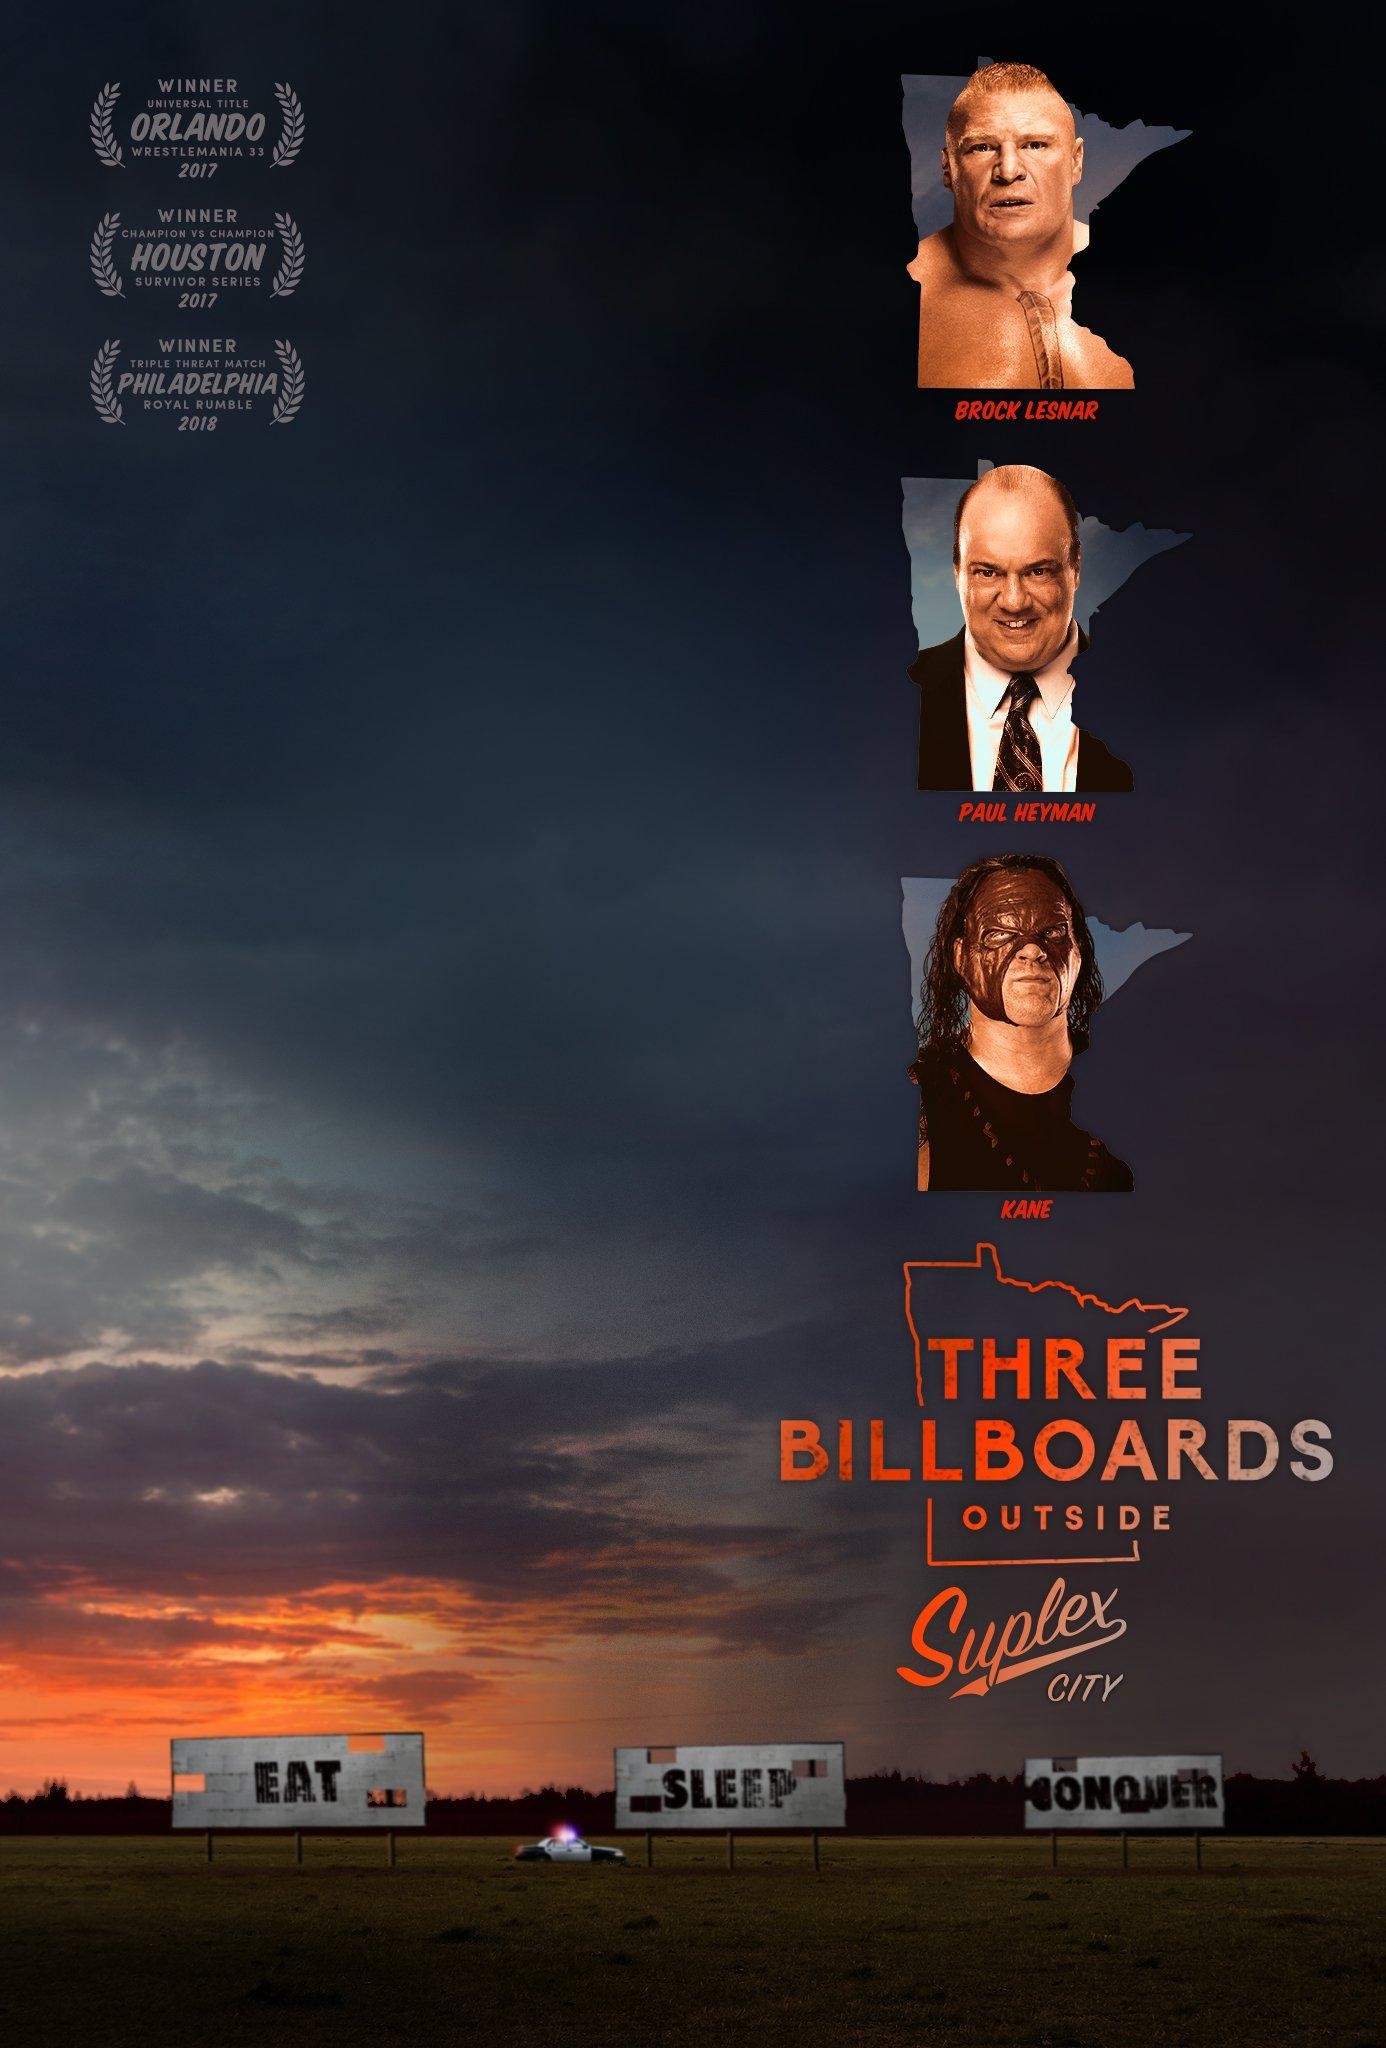 ThreeBillboards--88e7d875f36148cd9e14e3d536d67504